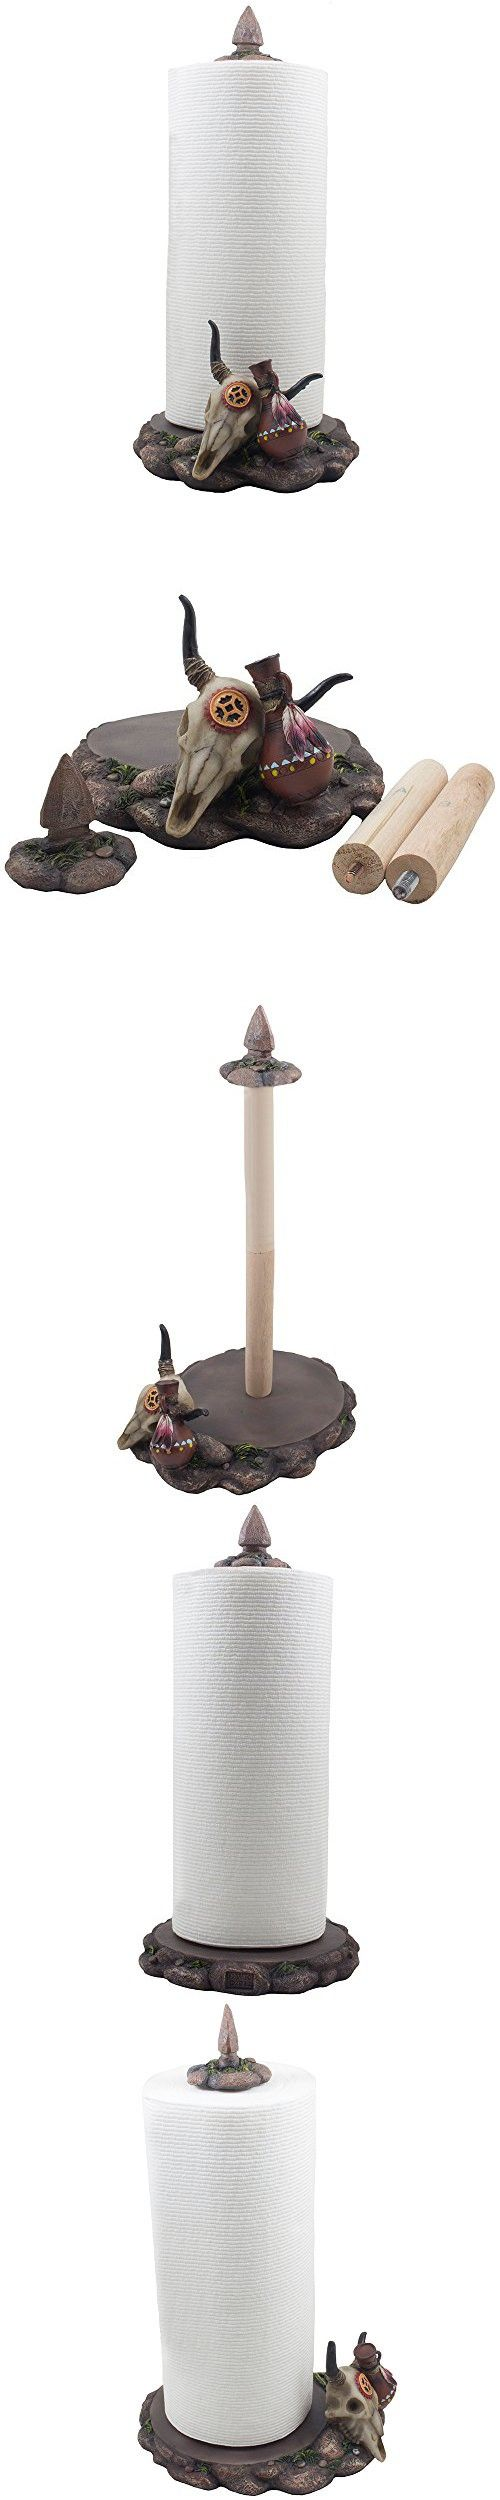 Decorative Southwestern Paper Towel Holder Sculpture with Bull Skull, Pottery and Indian Arrowhead on Display Stand in Western & Southwest Kitchen Decor and Native American Art Gifts